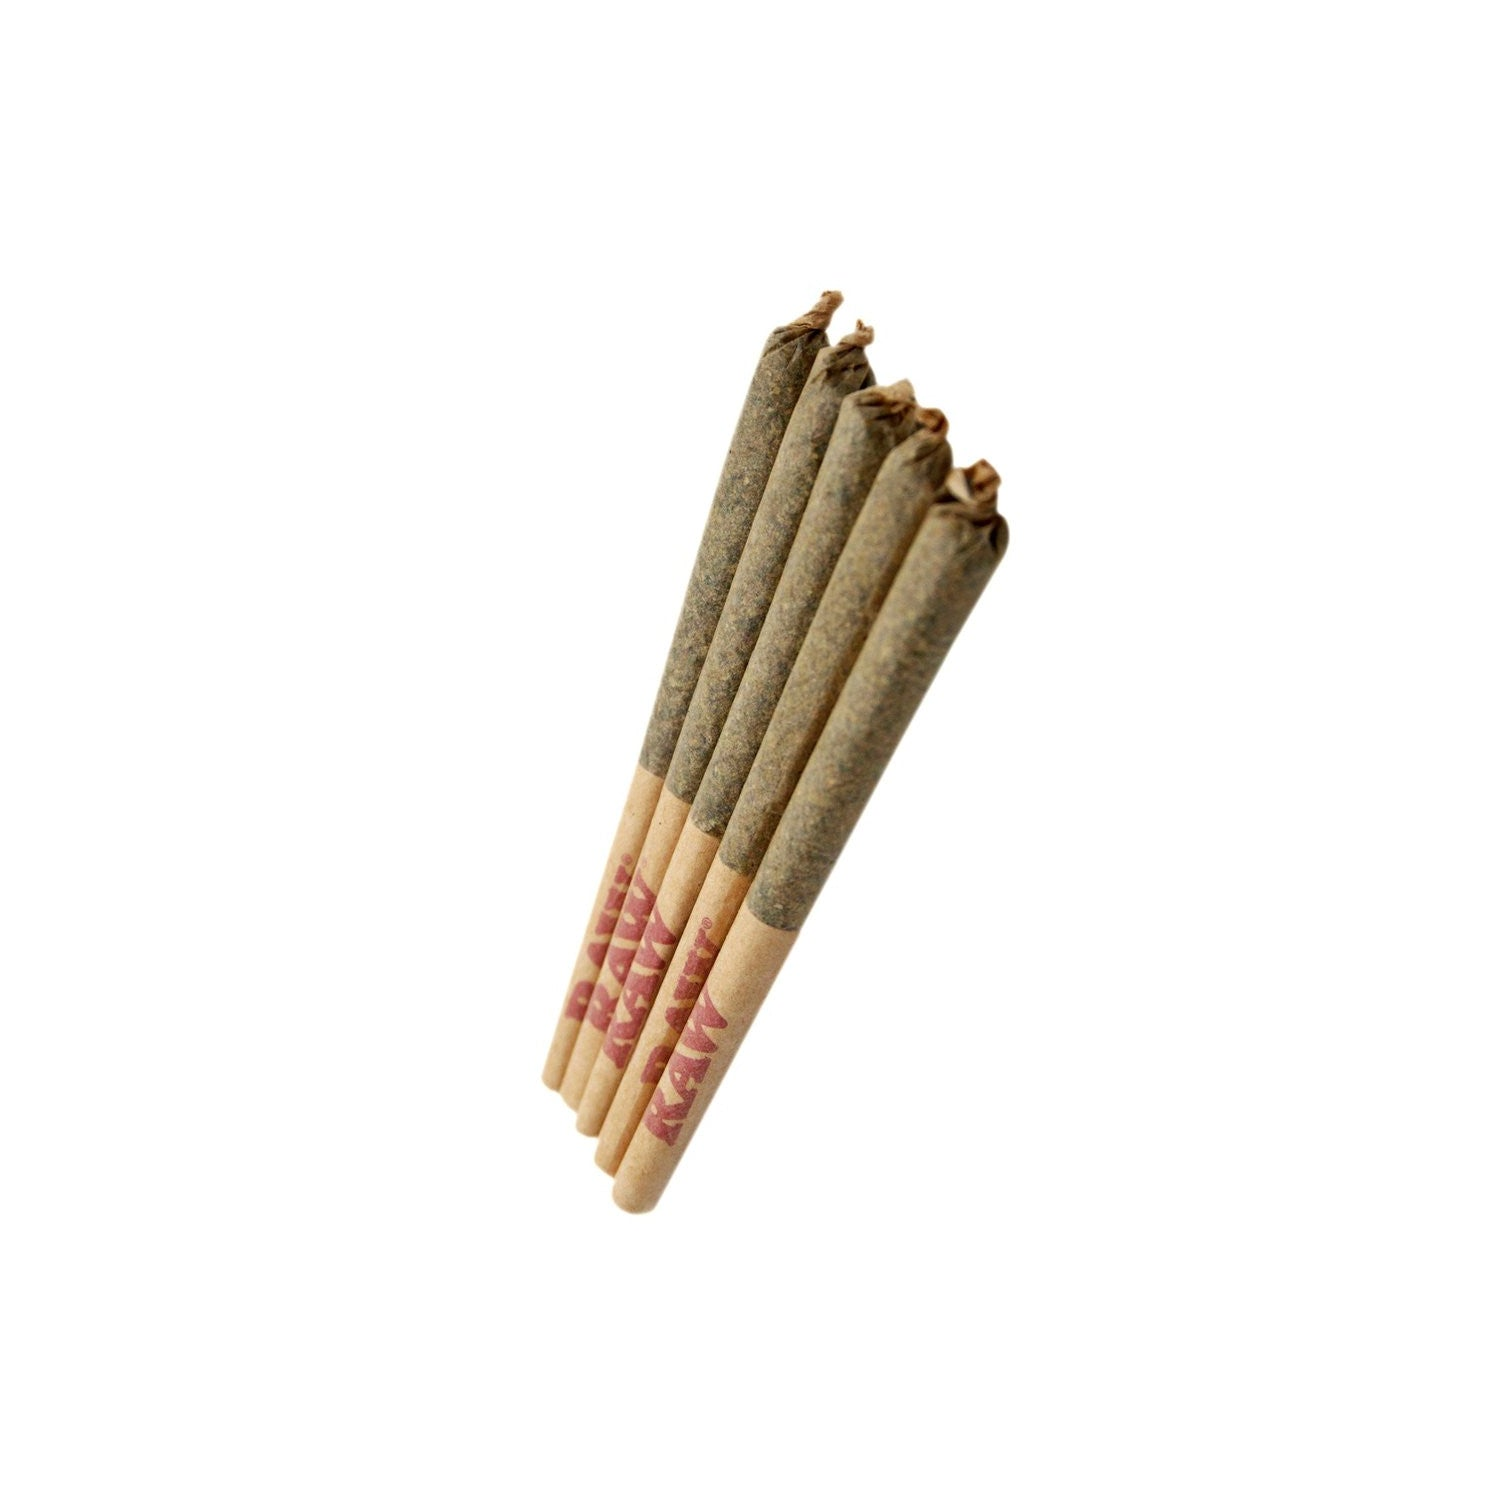 5 pre-rolled dried cannabis joints on a white background.